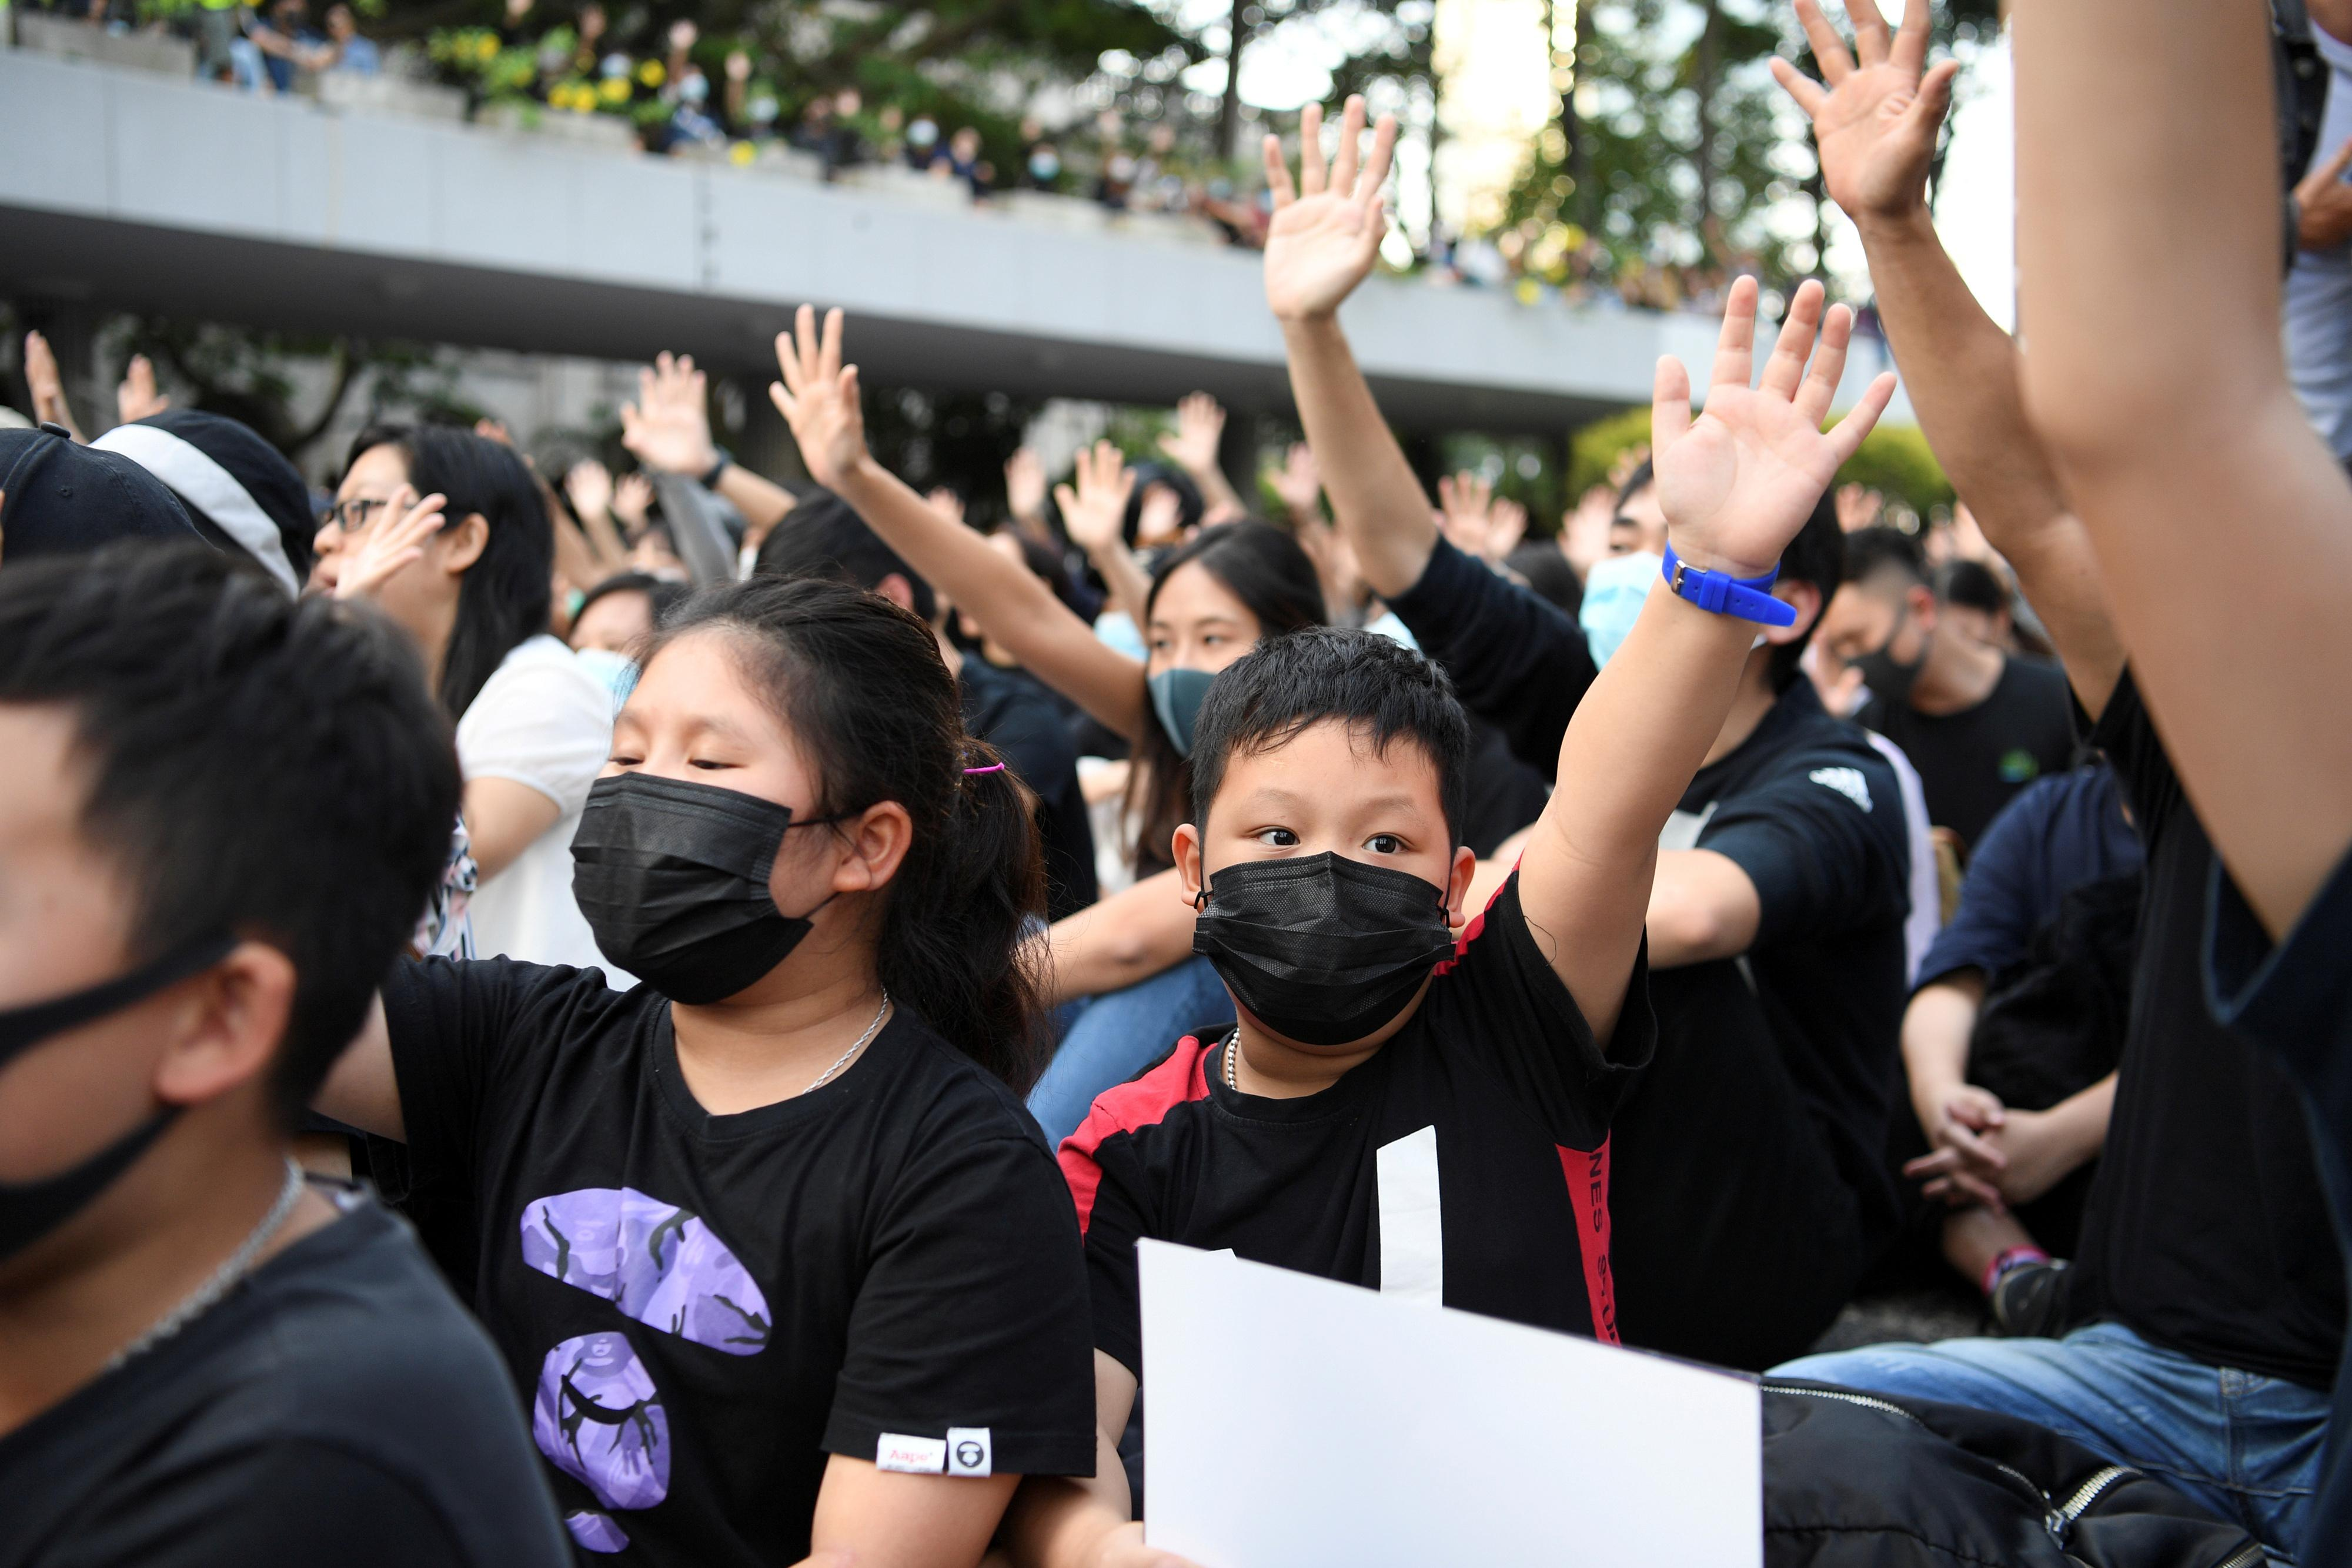 Hong Kong court rules ban on face masks unconstitutional